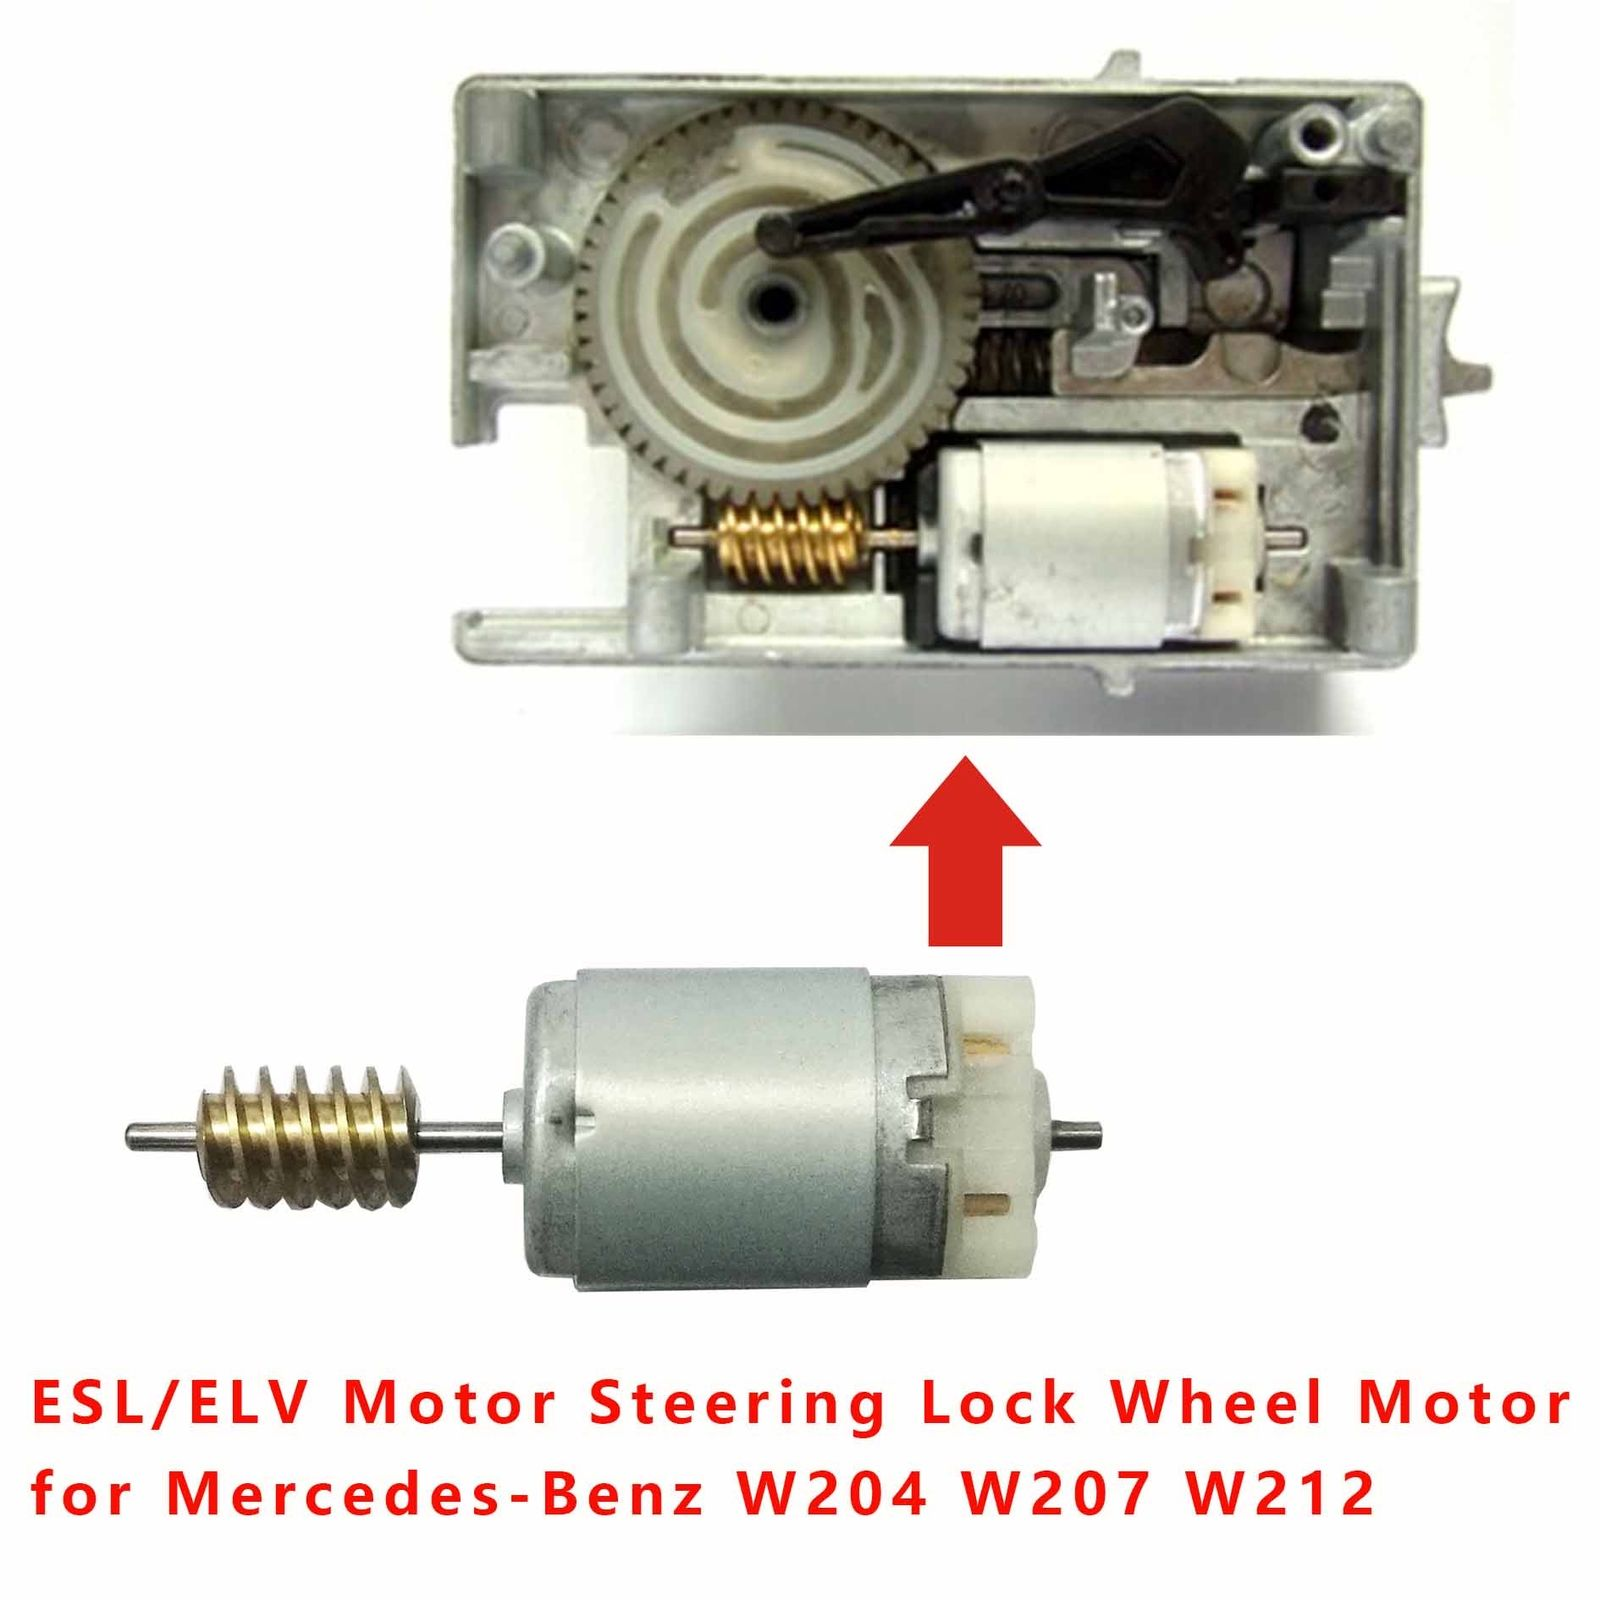 New Benz Steering Lock Auto Wheel Motor ELV ESL For  Mercedes W204 W207 W212